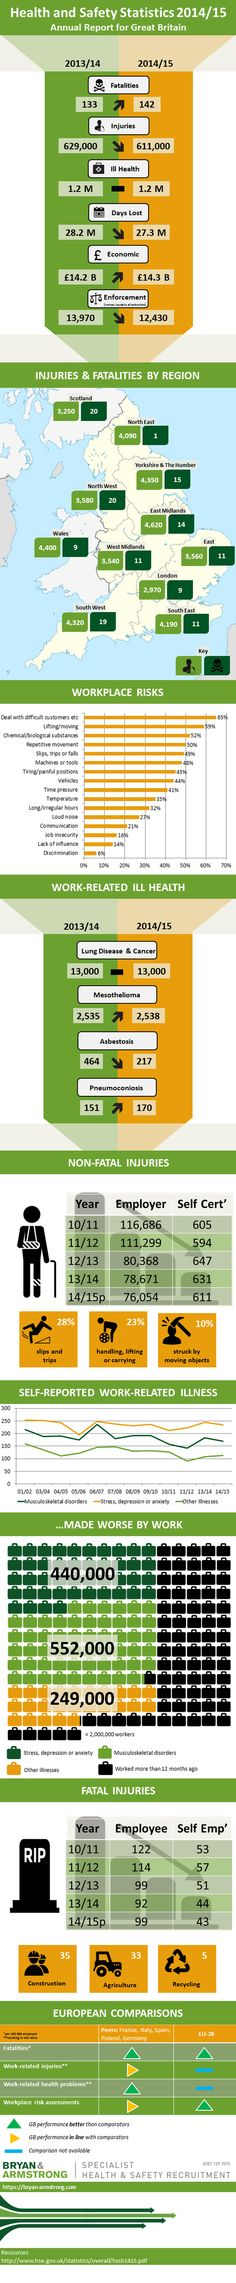 Health and Safety Statistics 2014/15 #infographic #Safety #Health